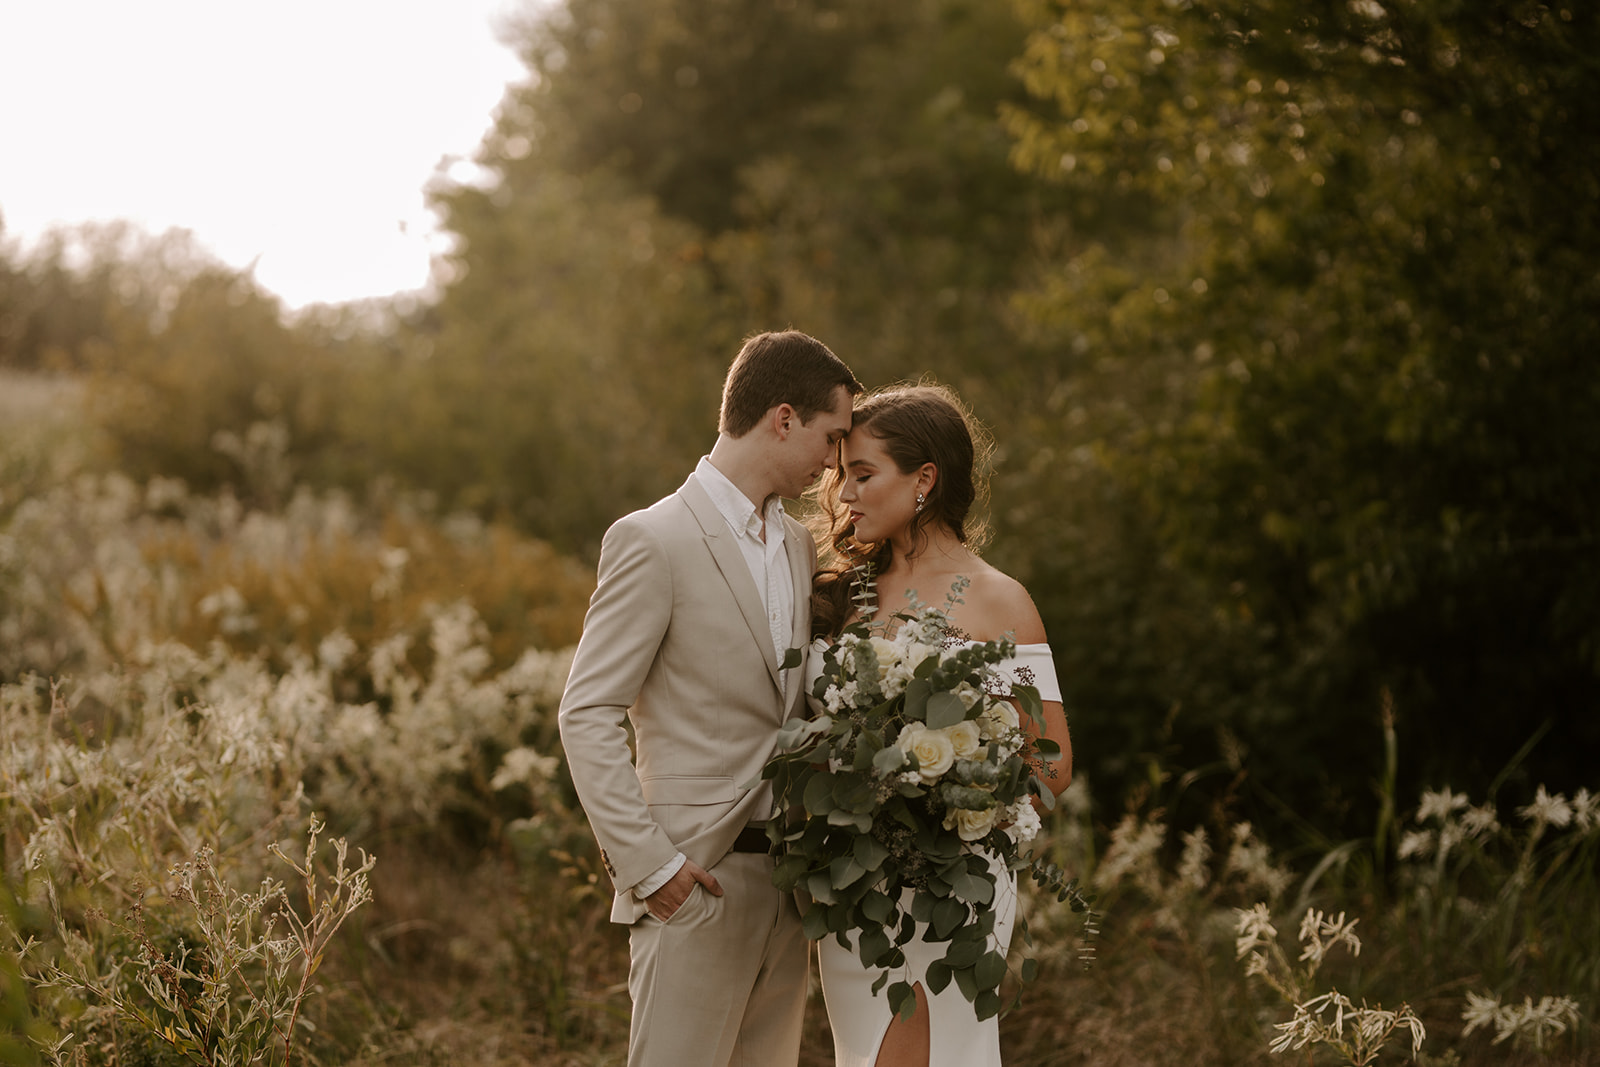 Winter-Fall Elopement- Meme Urbane Photography photos-47.jpg